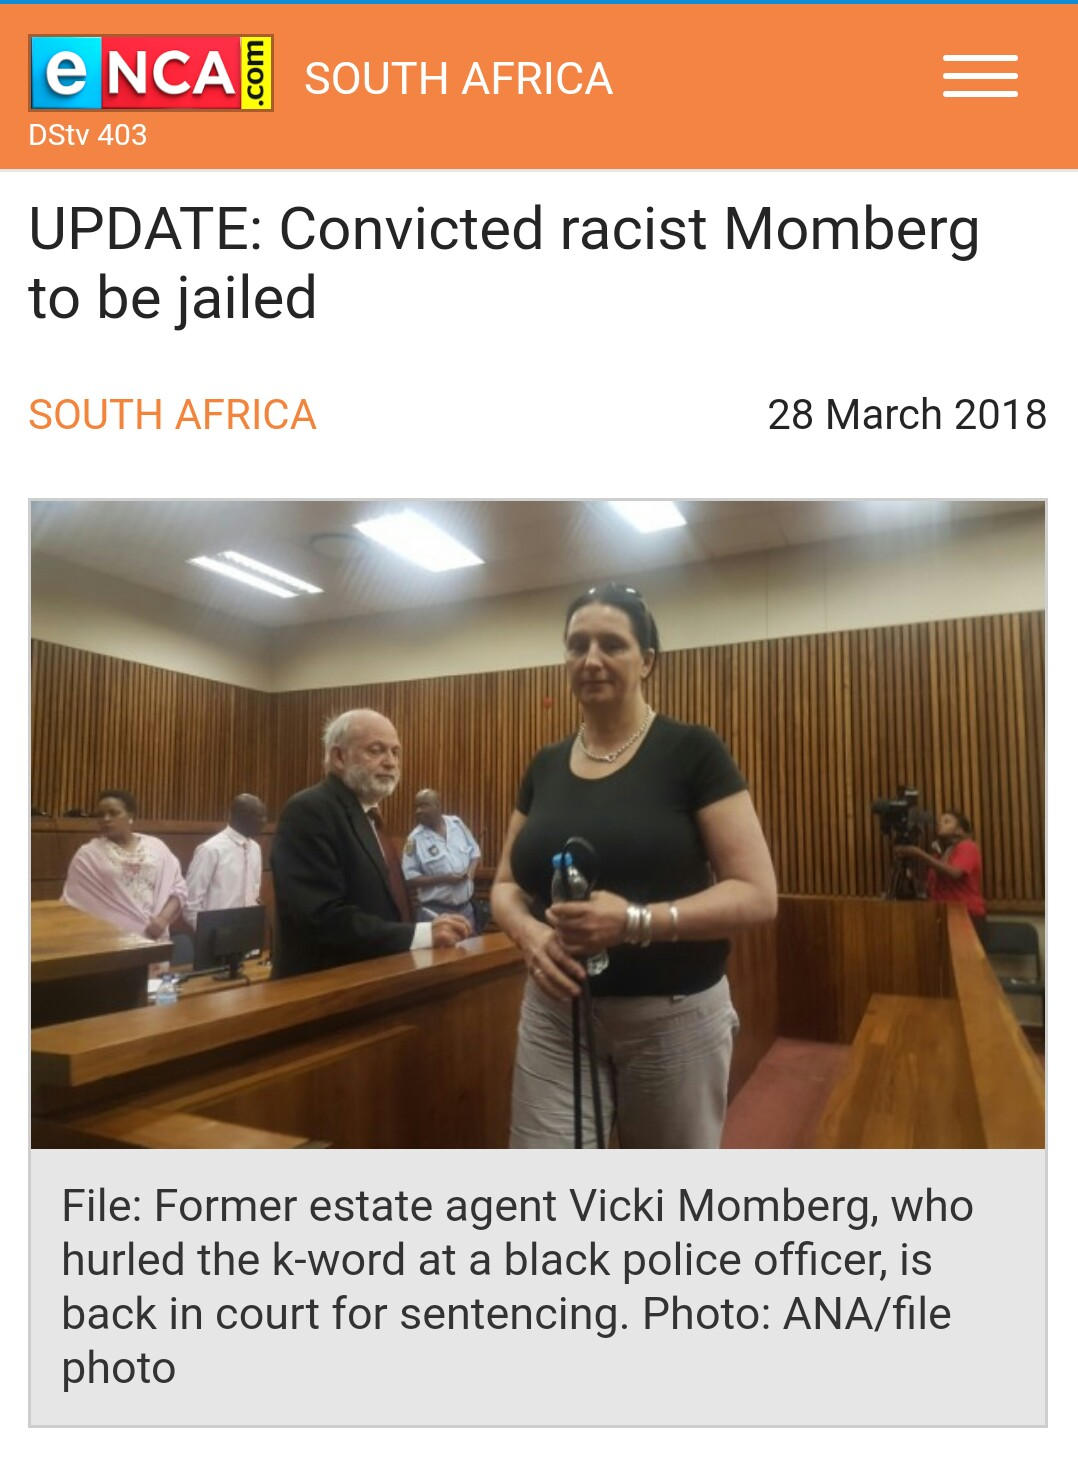 Vicky Momberg ordered to pay policeman R100k for hate speech